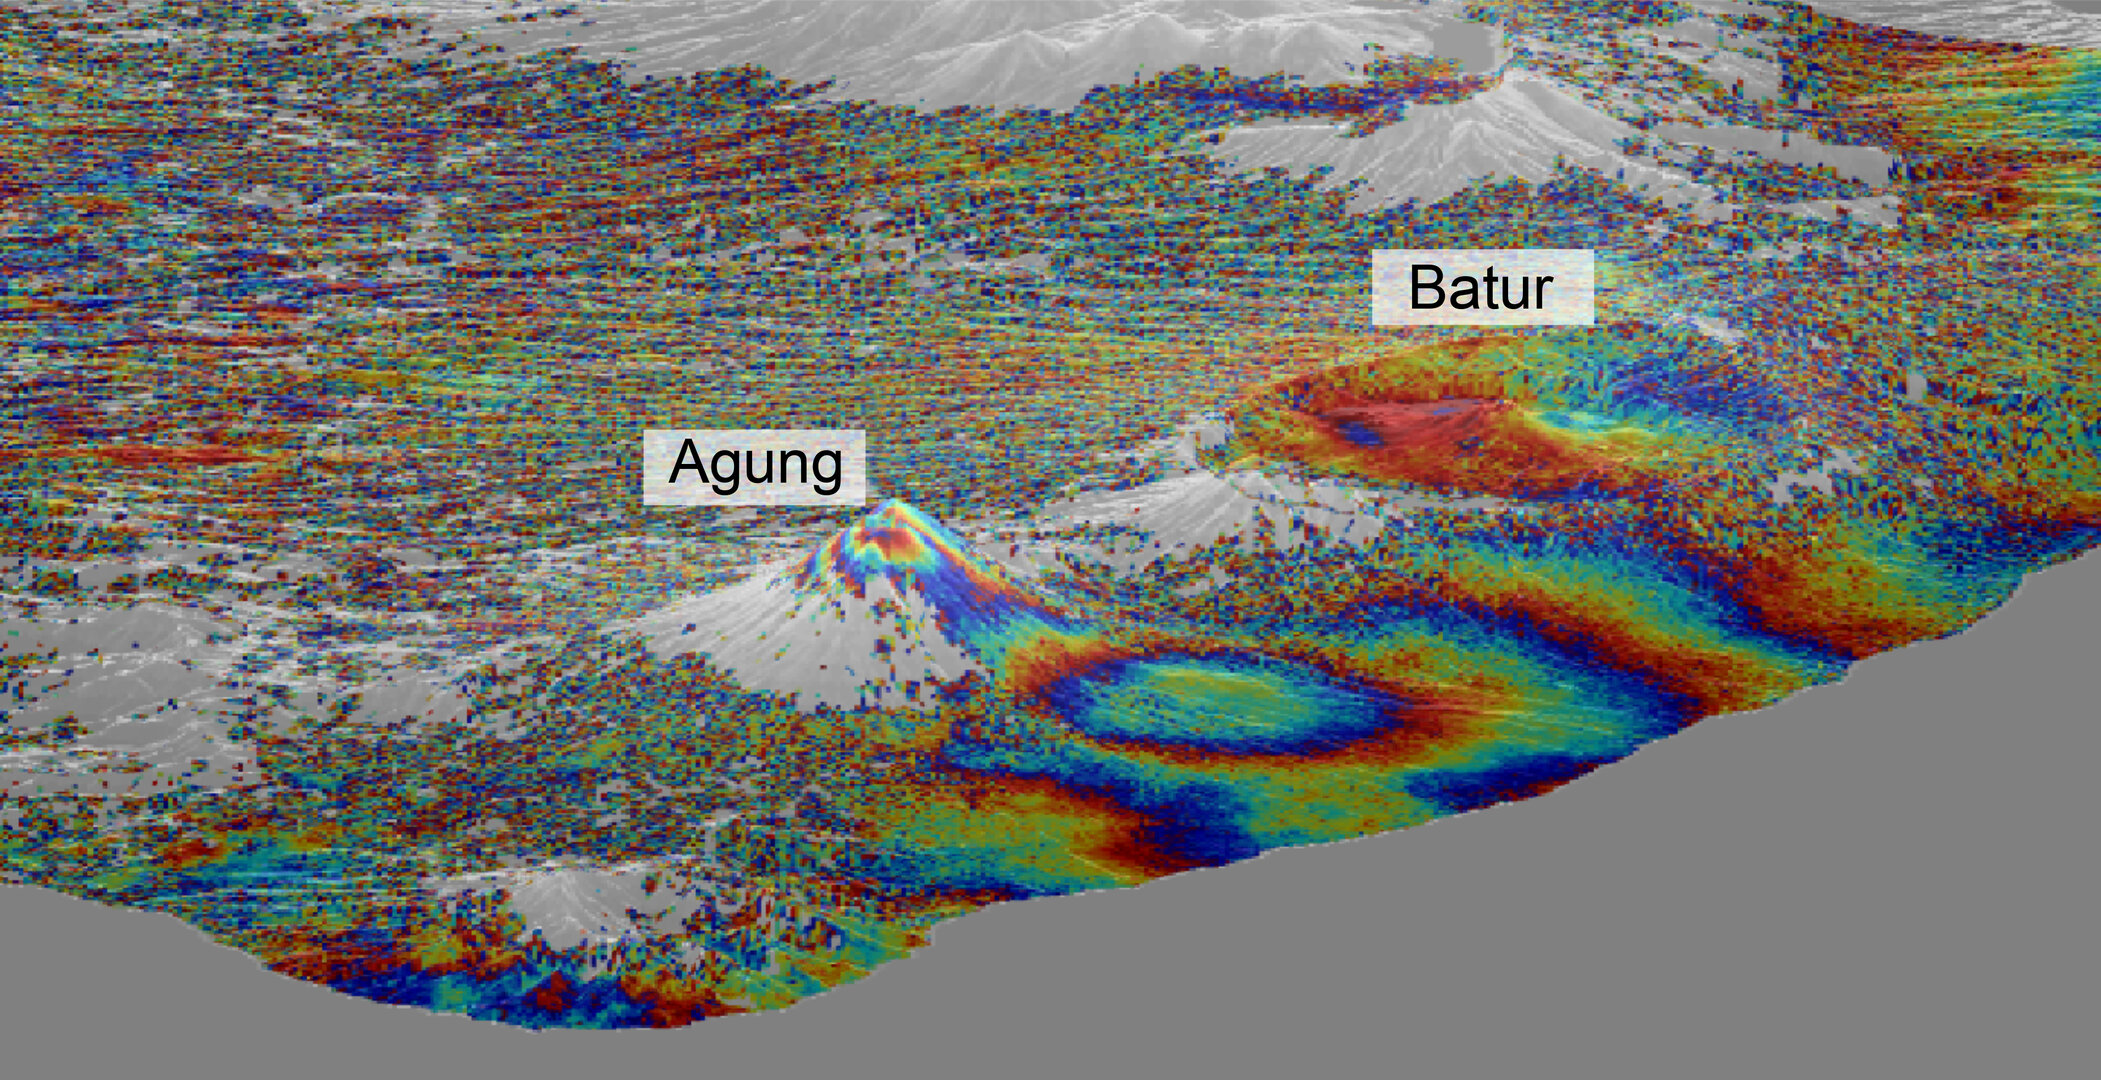 Sentinel-1 data shows ground uplift around Bali's Mount Agung volcano. The uplift occurred just before an eruption, which was preceded by several small earthquakes. Ground motion indicates that fresh magma is moving beneath the volcano – a sign of an upcoming eruption.